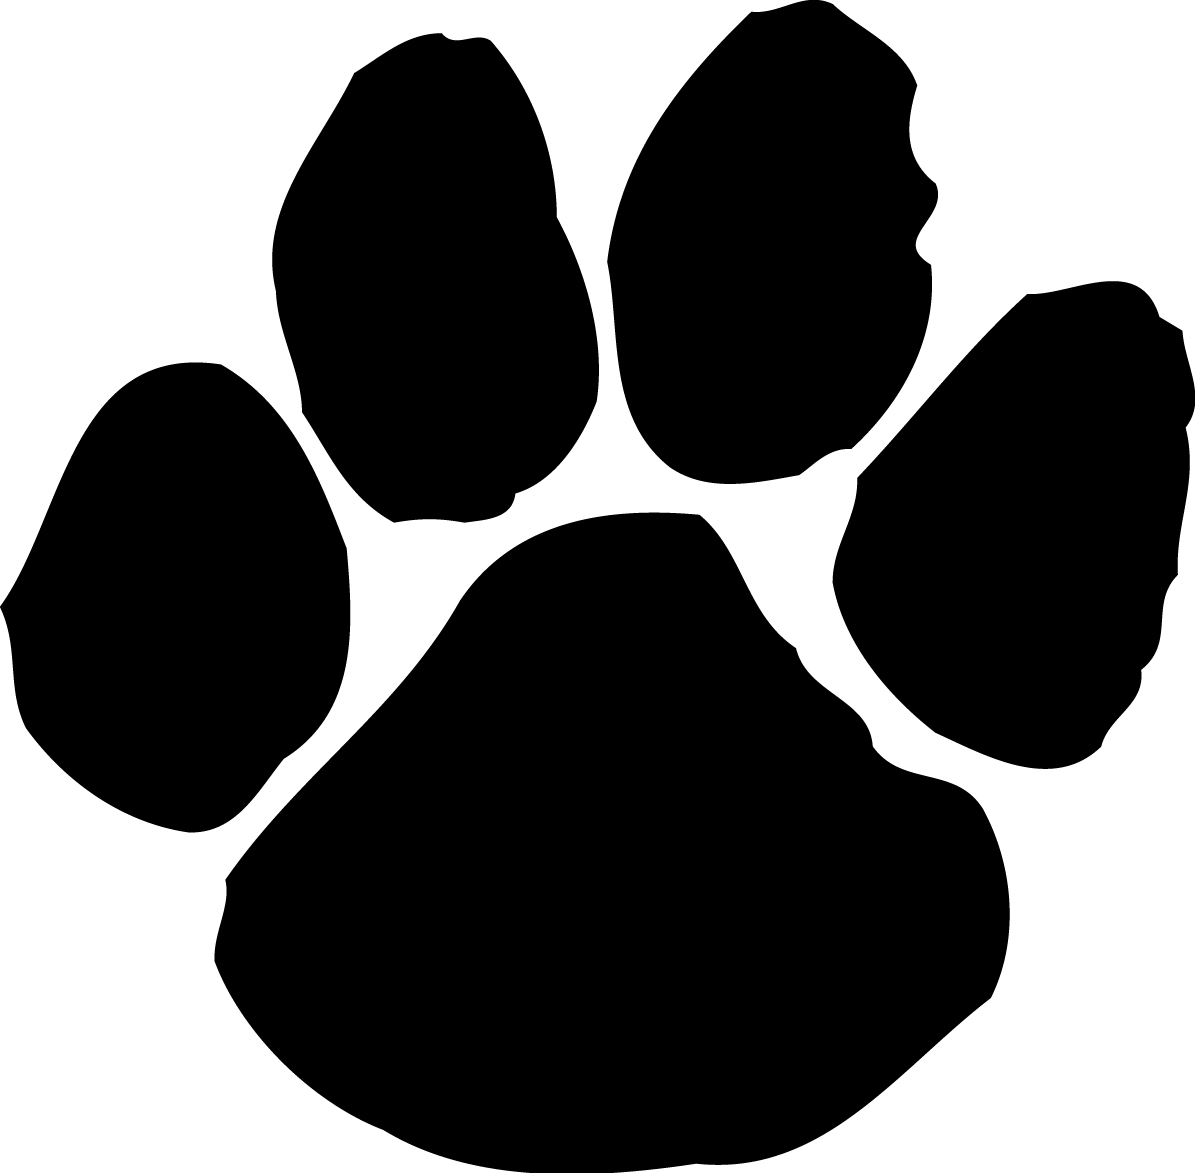 Paw print tattoos on dog paw prints scroll clipart 3